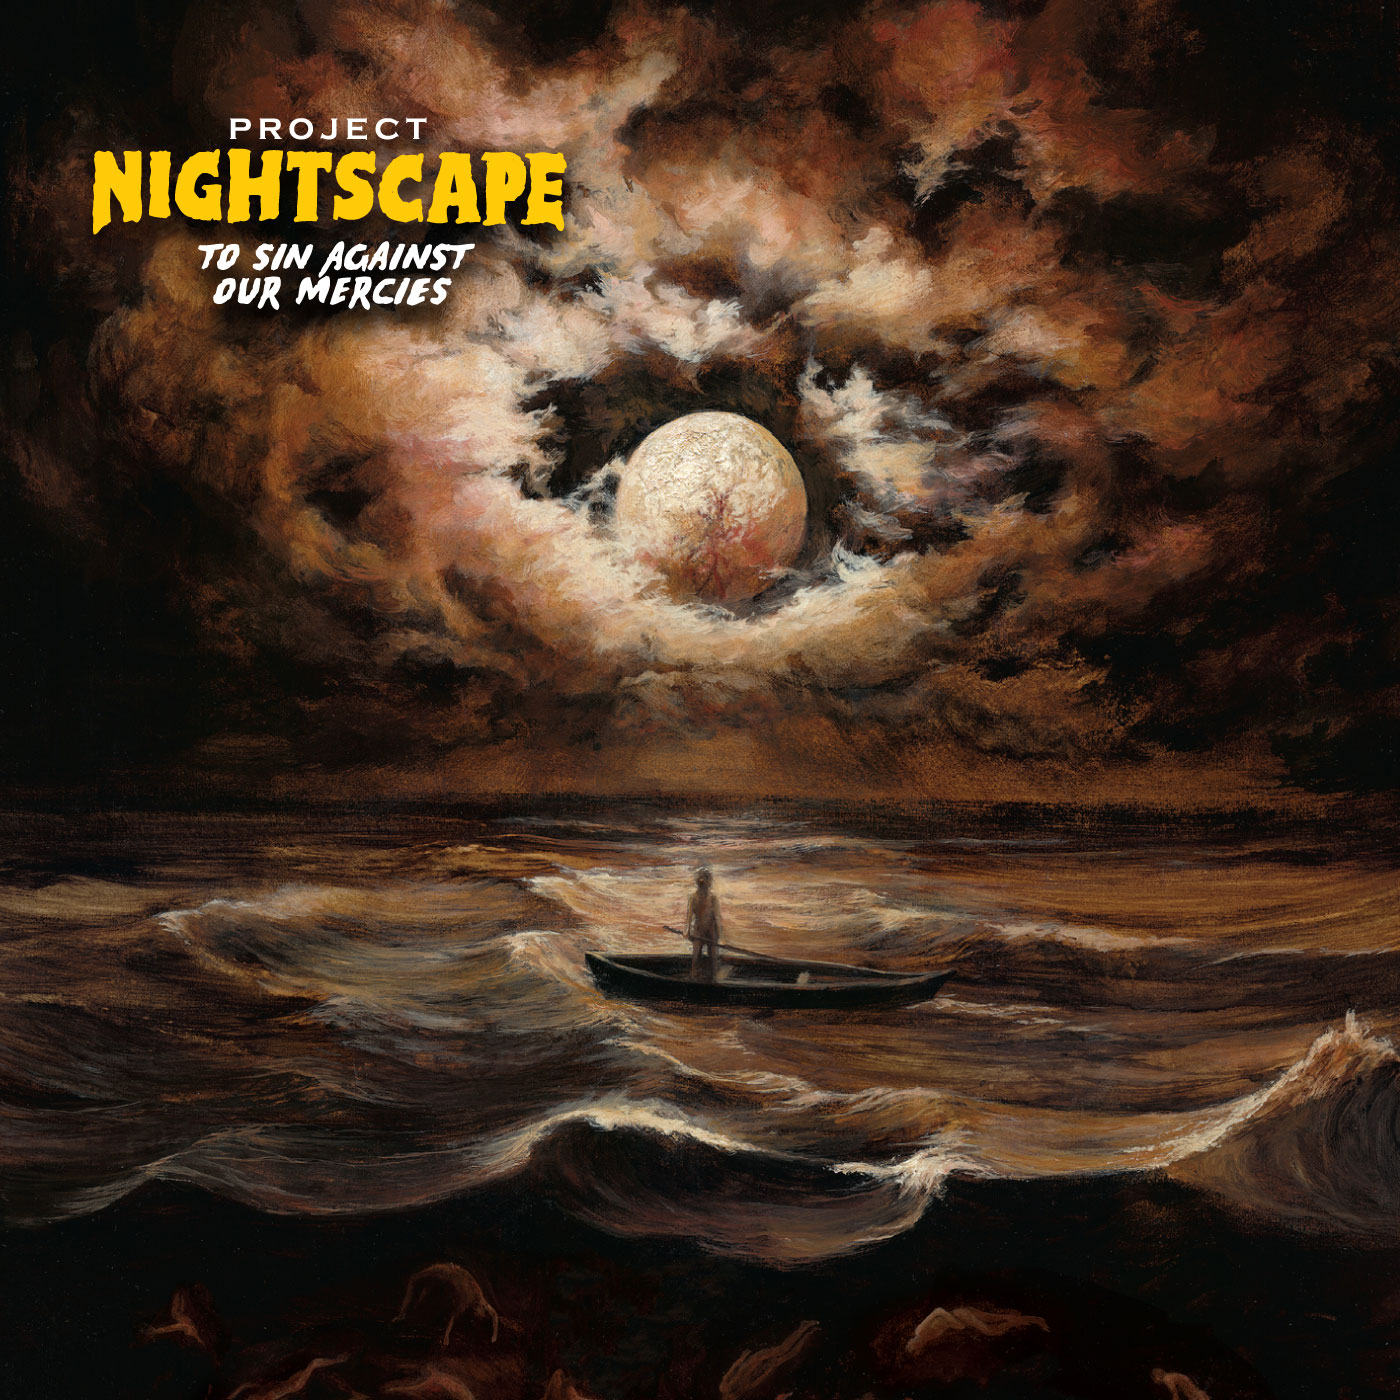 Nightscape Concept Album